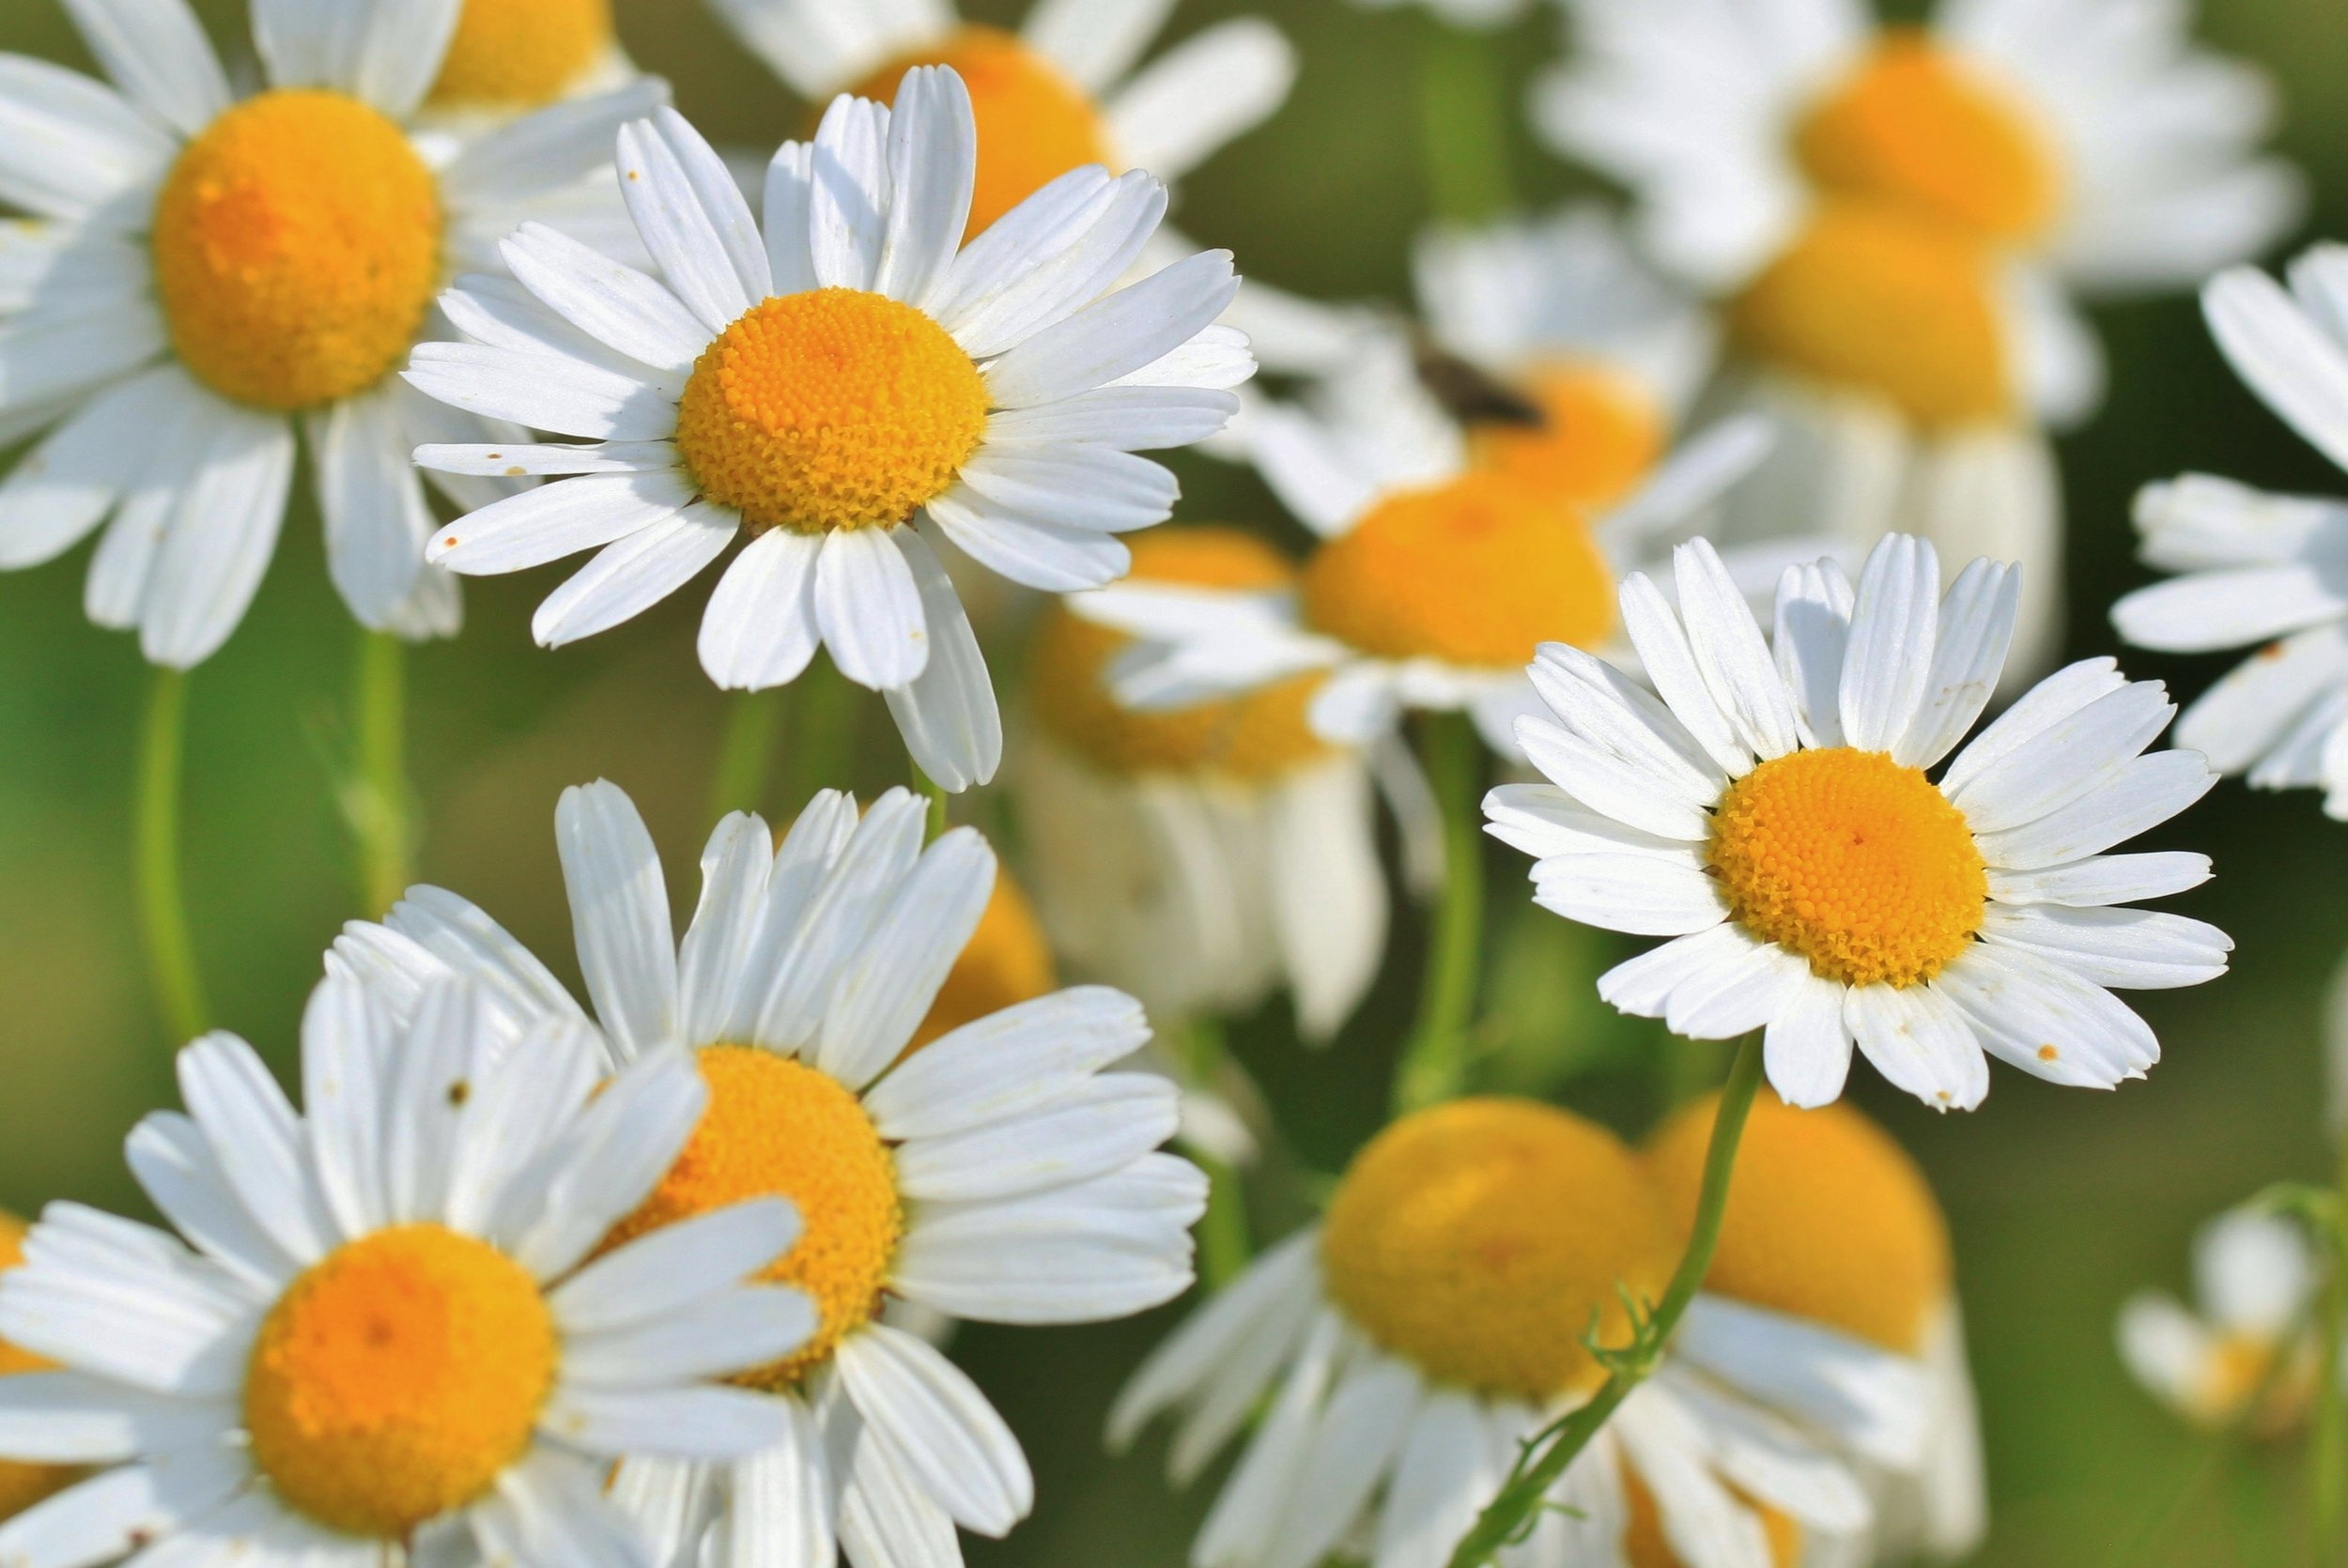 Chamomile is a wild edible found in Missouri. Who knew?